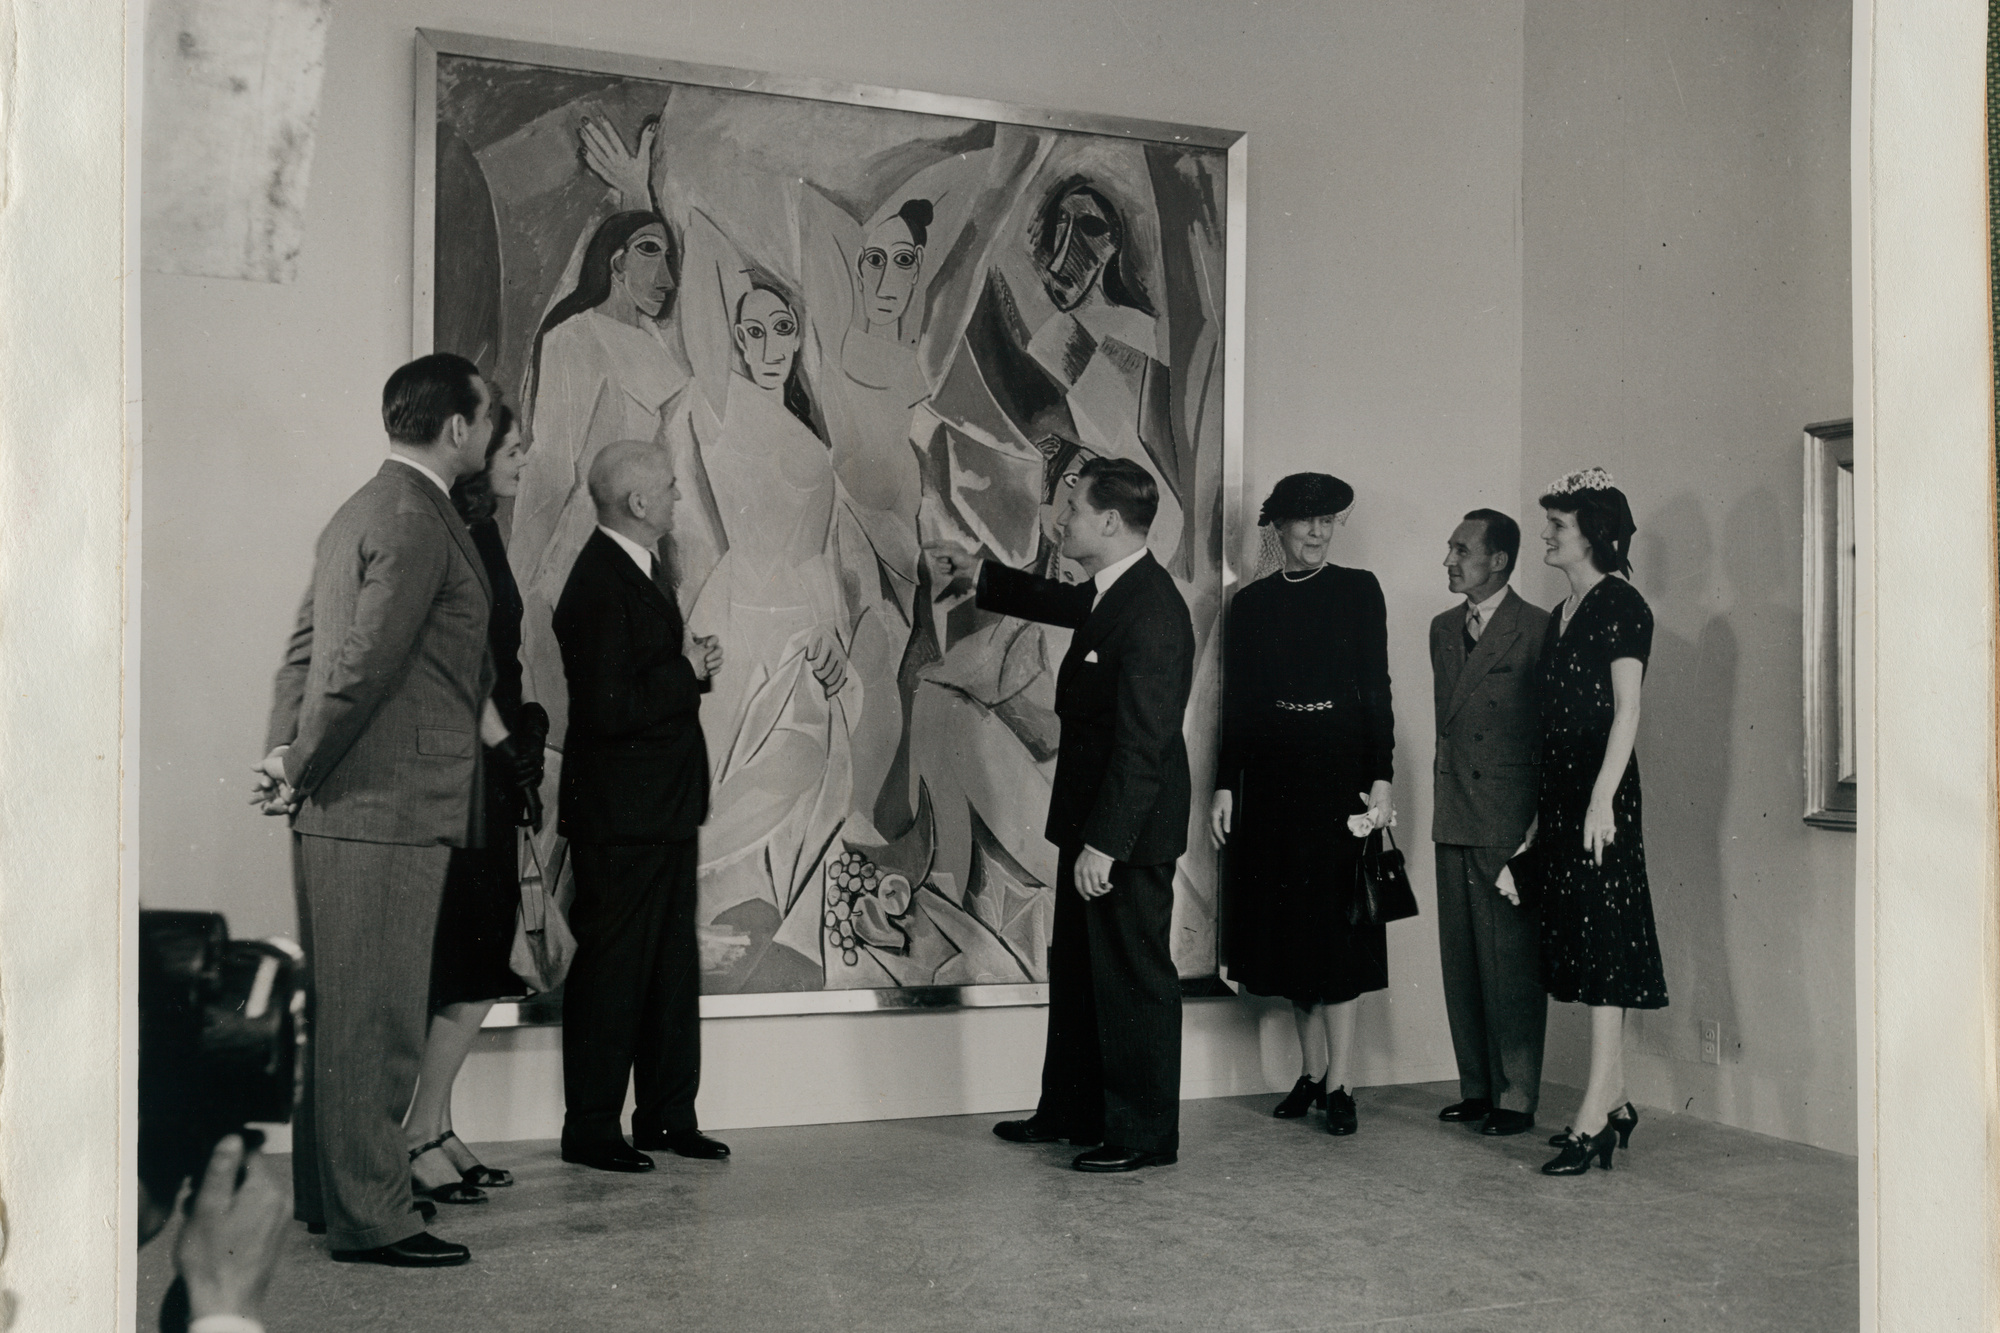 Pablo Picasso's *Les Demoiselles d'Avignon (1907), upon its acquisition. From left: John Hay Whitney, Lily Emmet Cushing, A. Conger Goodyear, Nelson A. Rockefeller, Jeanie Sheppard, Edsel Ford, and Elizabeth Bliss Parkinson. 1939. A. Conger Goodyear Scrapbooks, 52